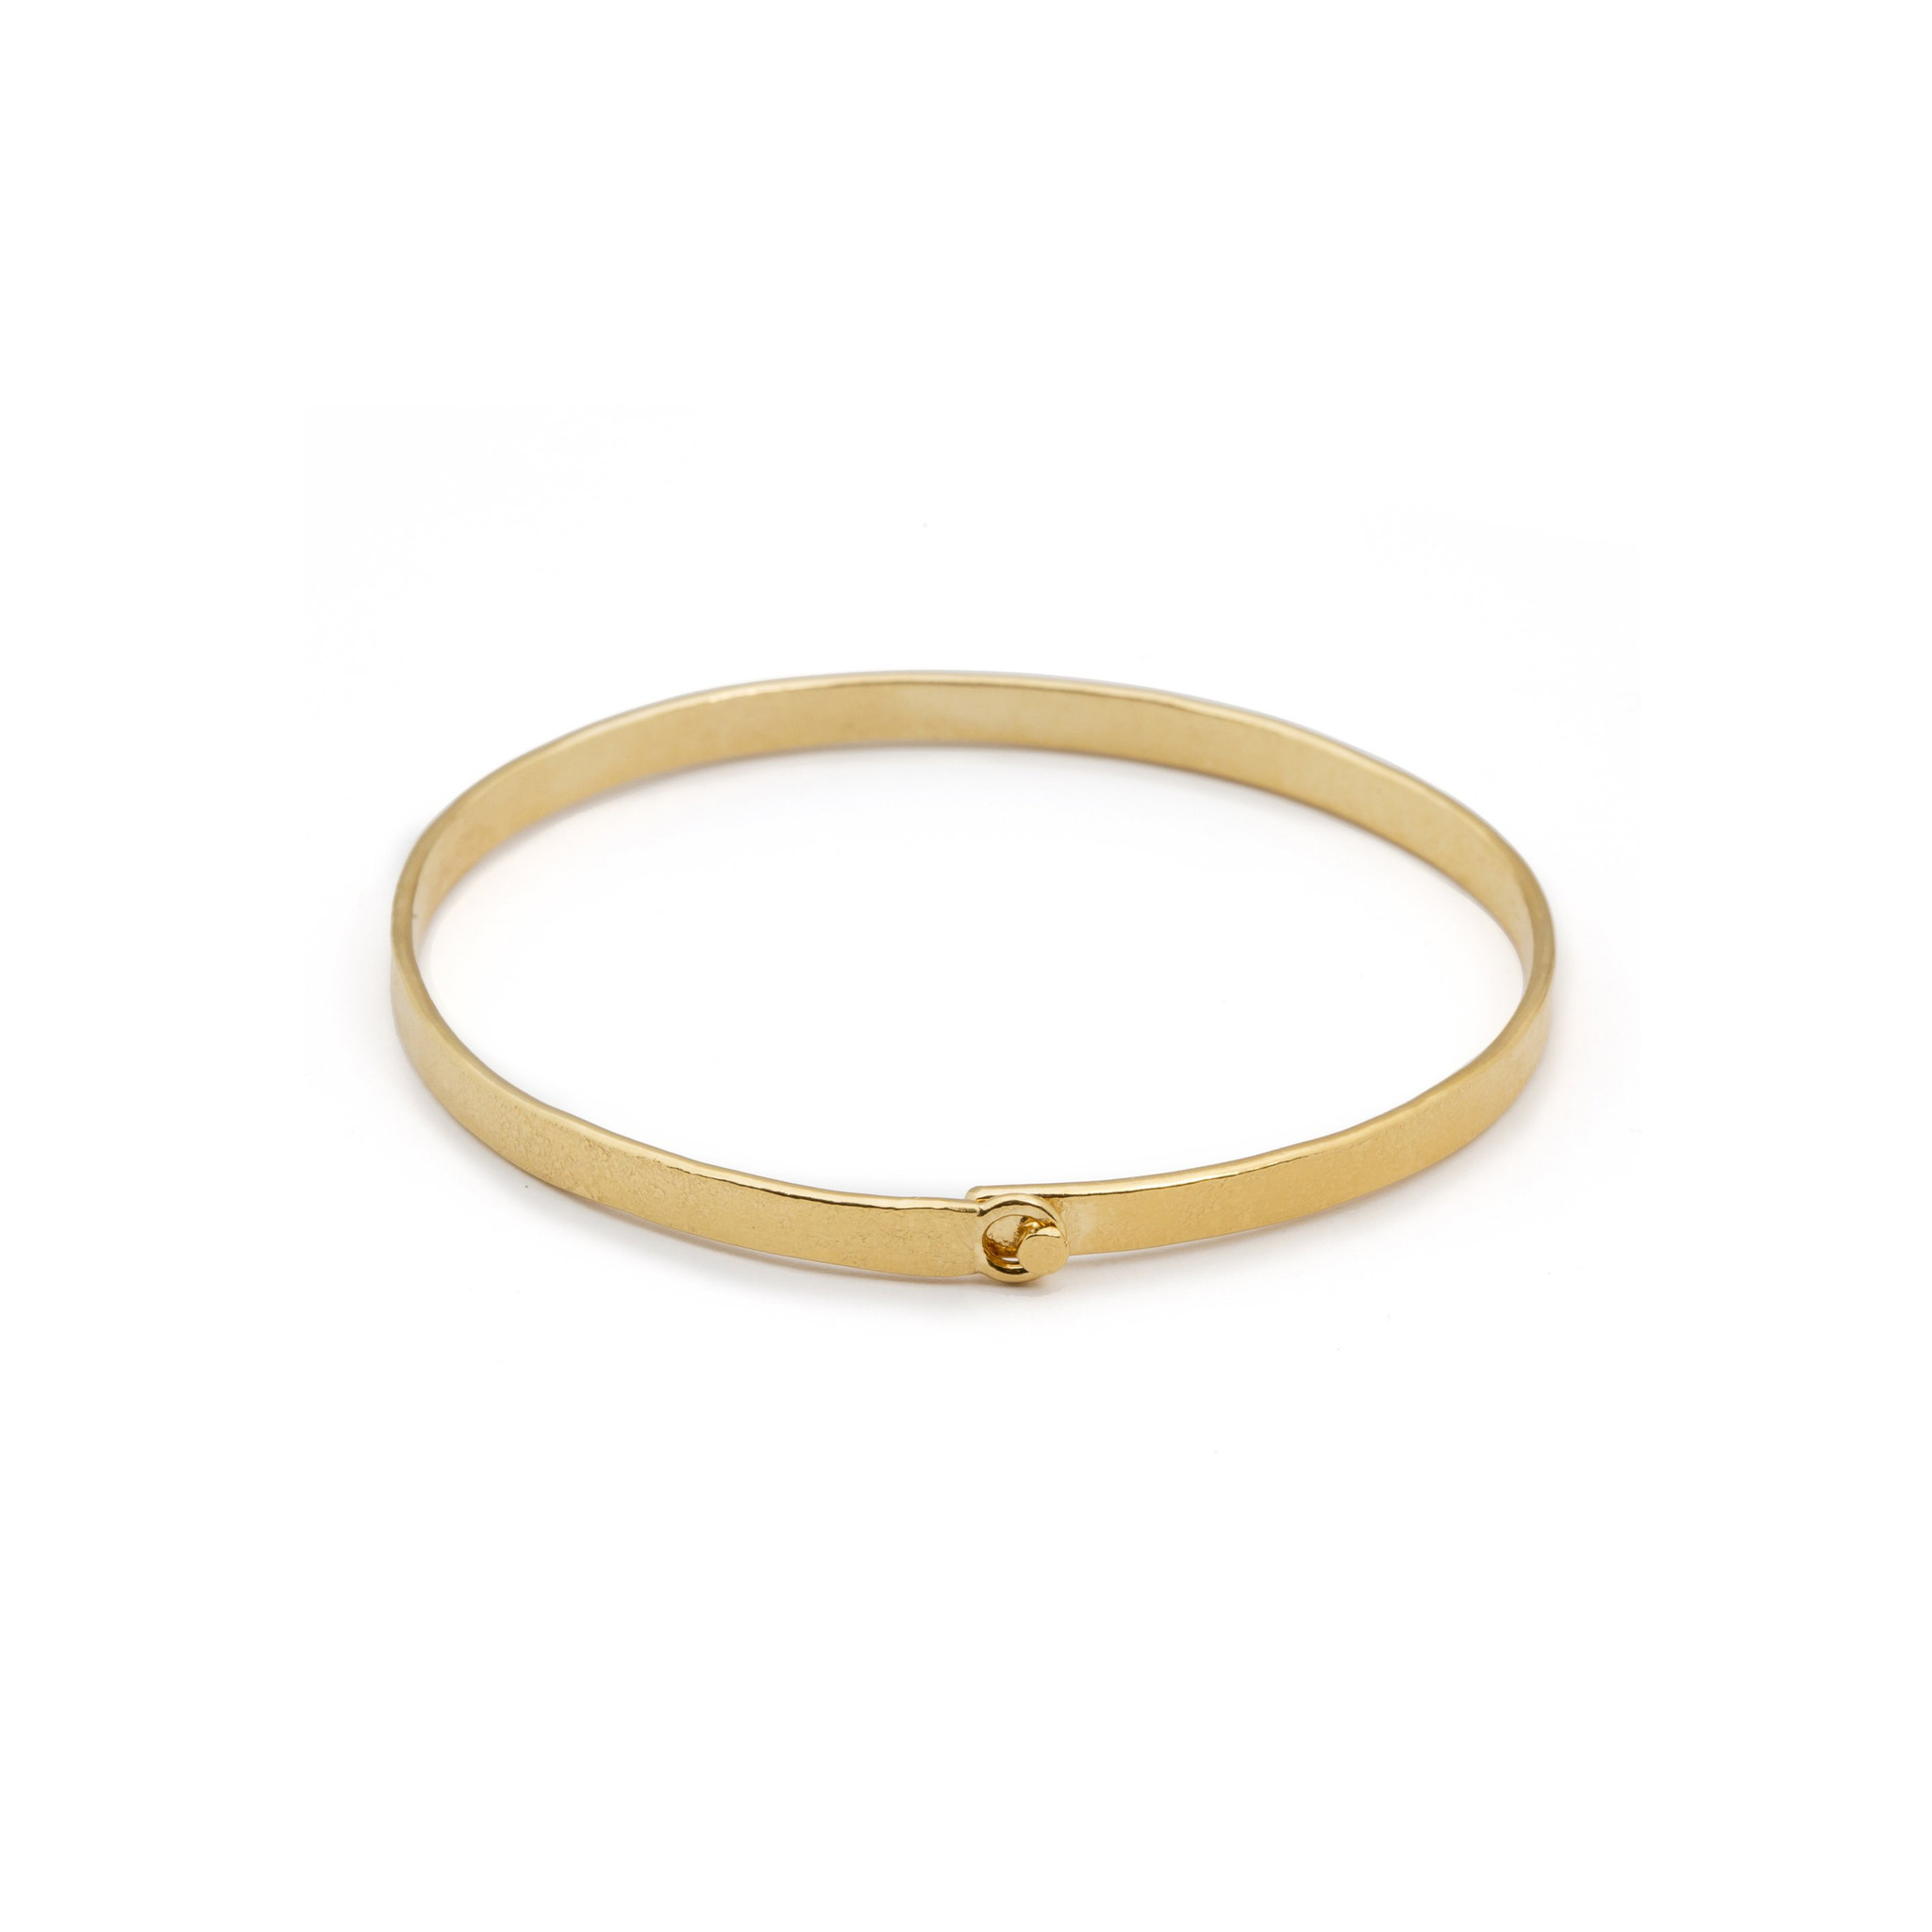 Bracelet with clasp Goldplated